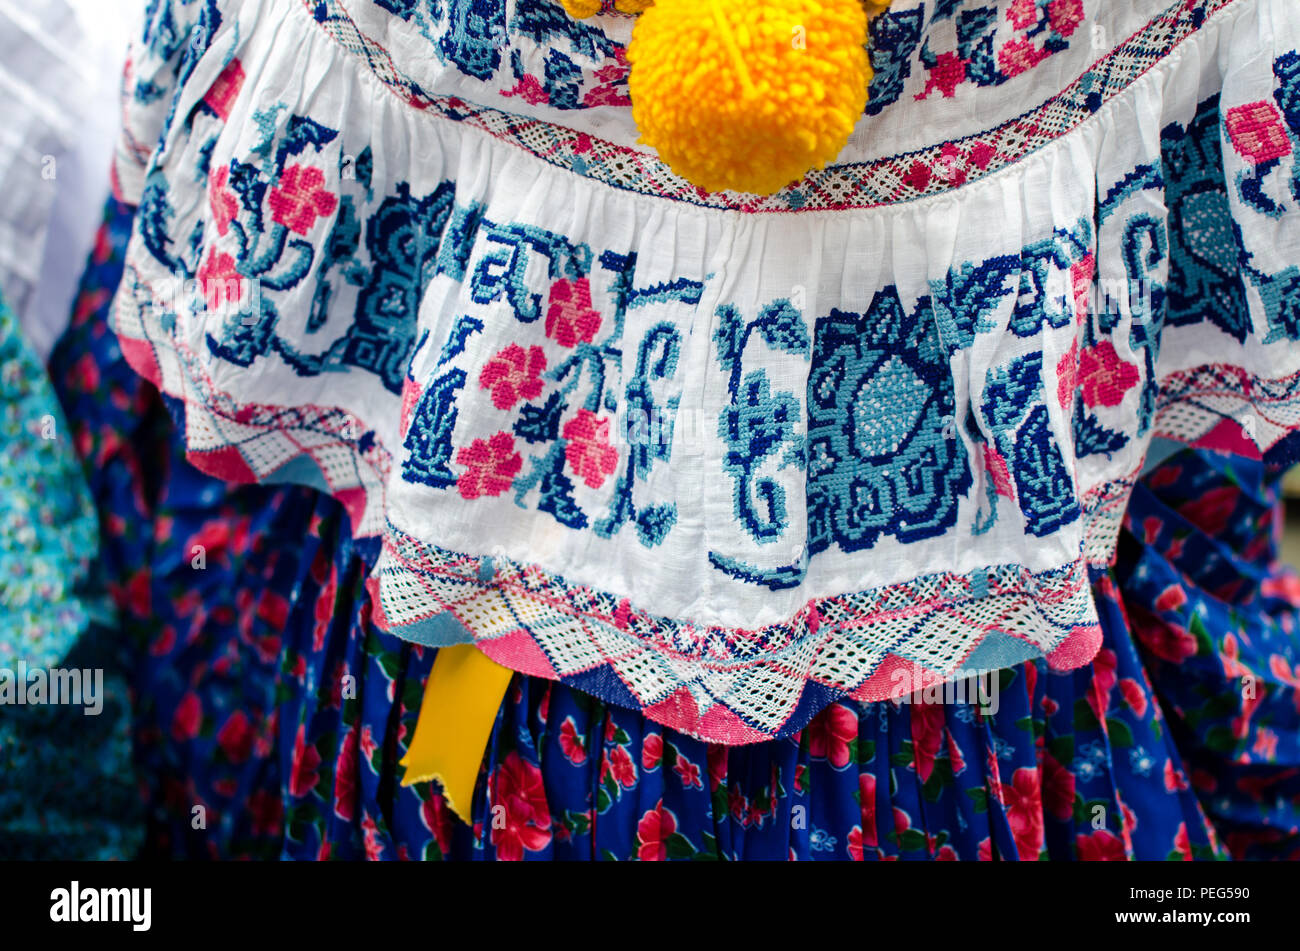 Details of a traditional Panamanian dress - Stock Image